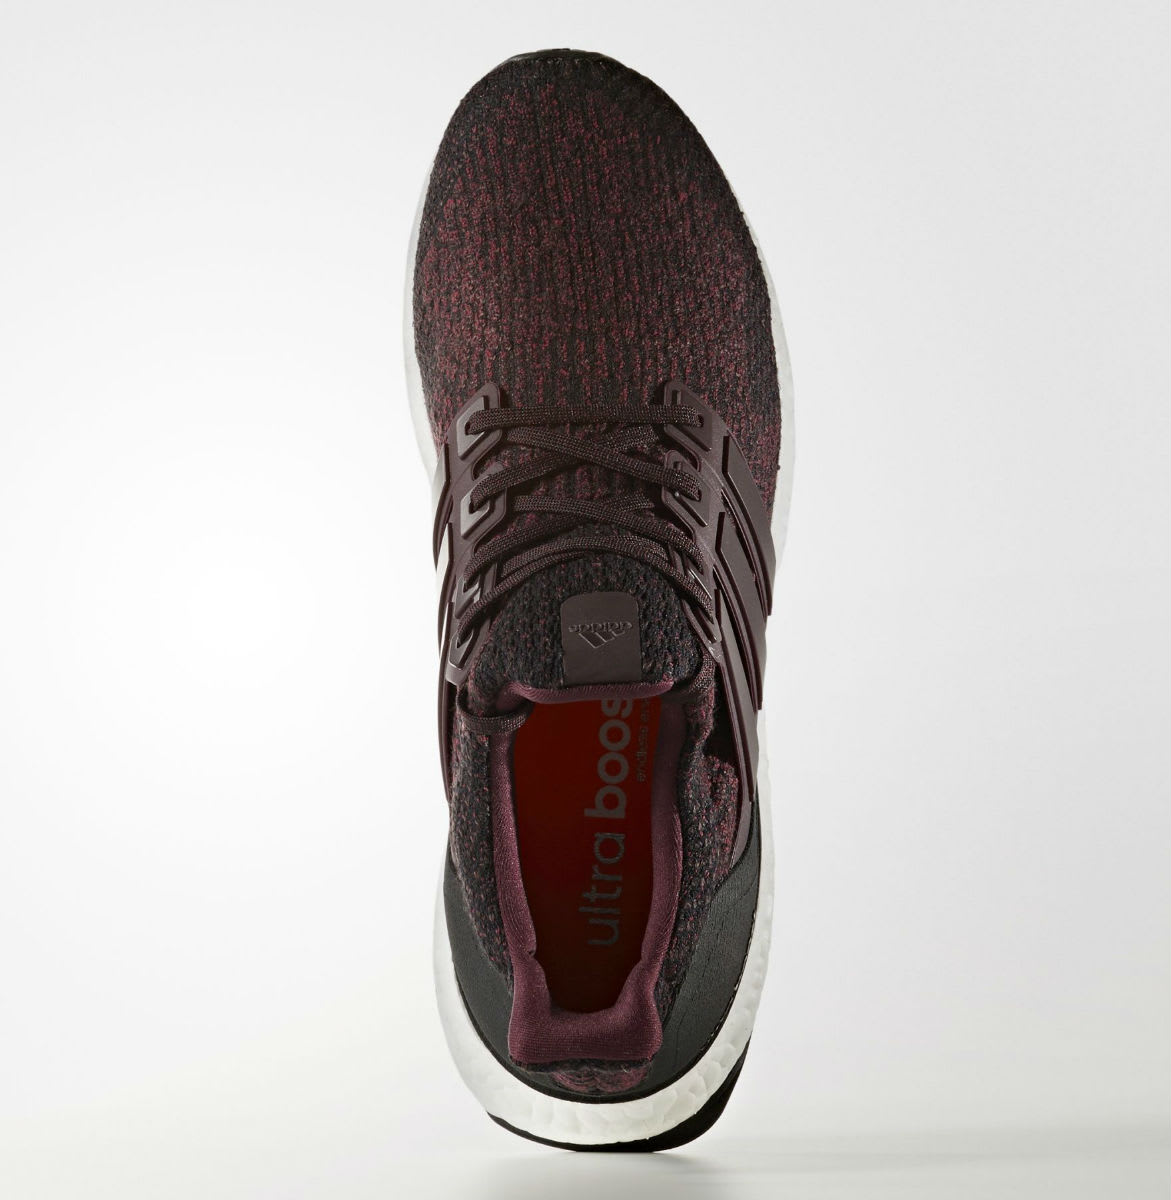 1db29637679a0 ... germany adidas ultra boost 3.0 dark burgundy release date top s80732  e718f 46f8b